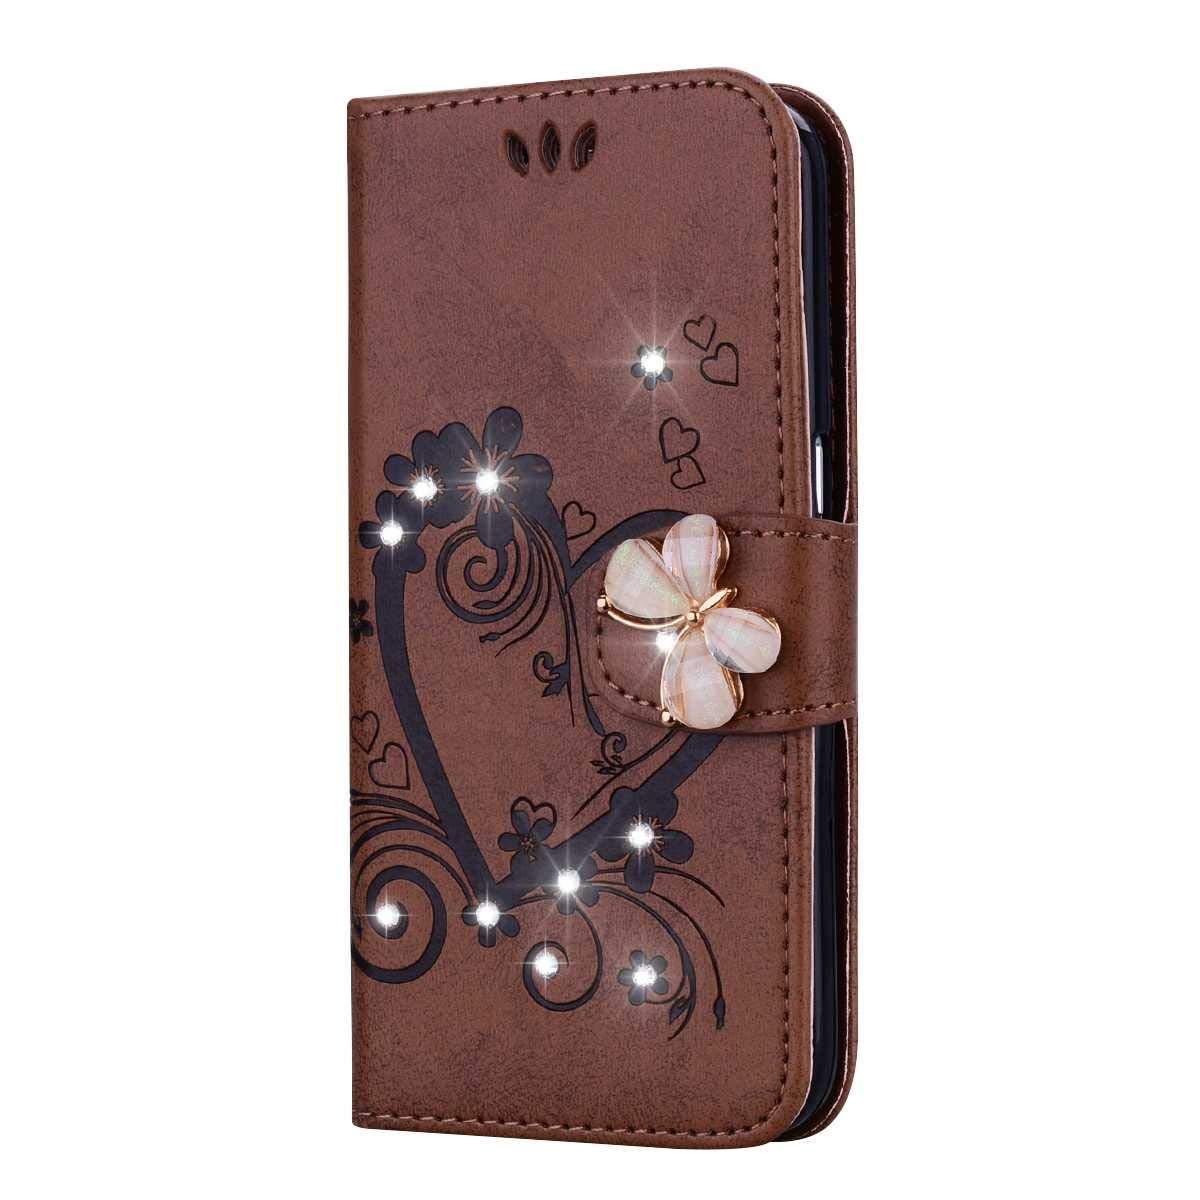 Bear Village Case Compatible with Samsung Galaxy A5 2016, Leather Full Body Protective Cover with Credit Card Slot, Magnetic Closure and Kickstand Function, Brown by Bear Village